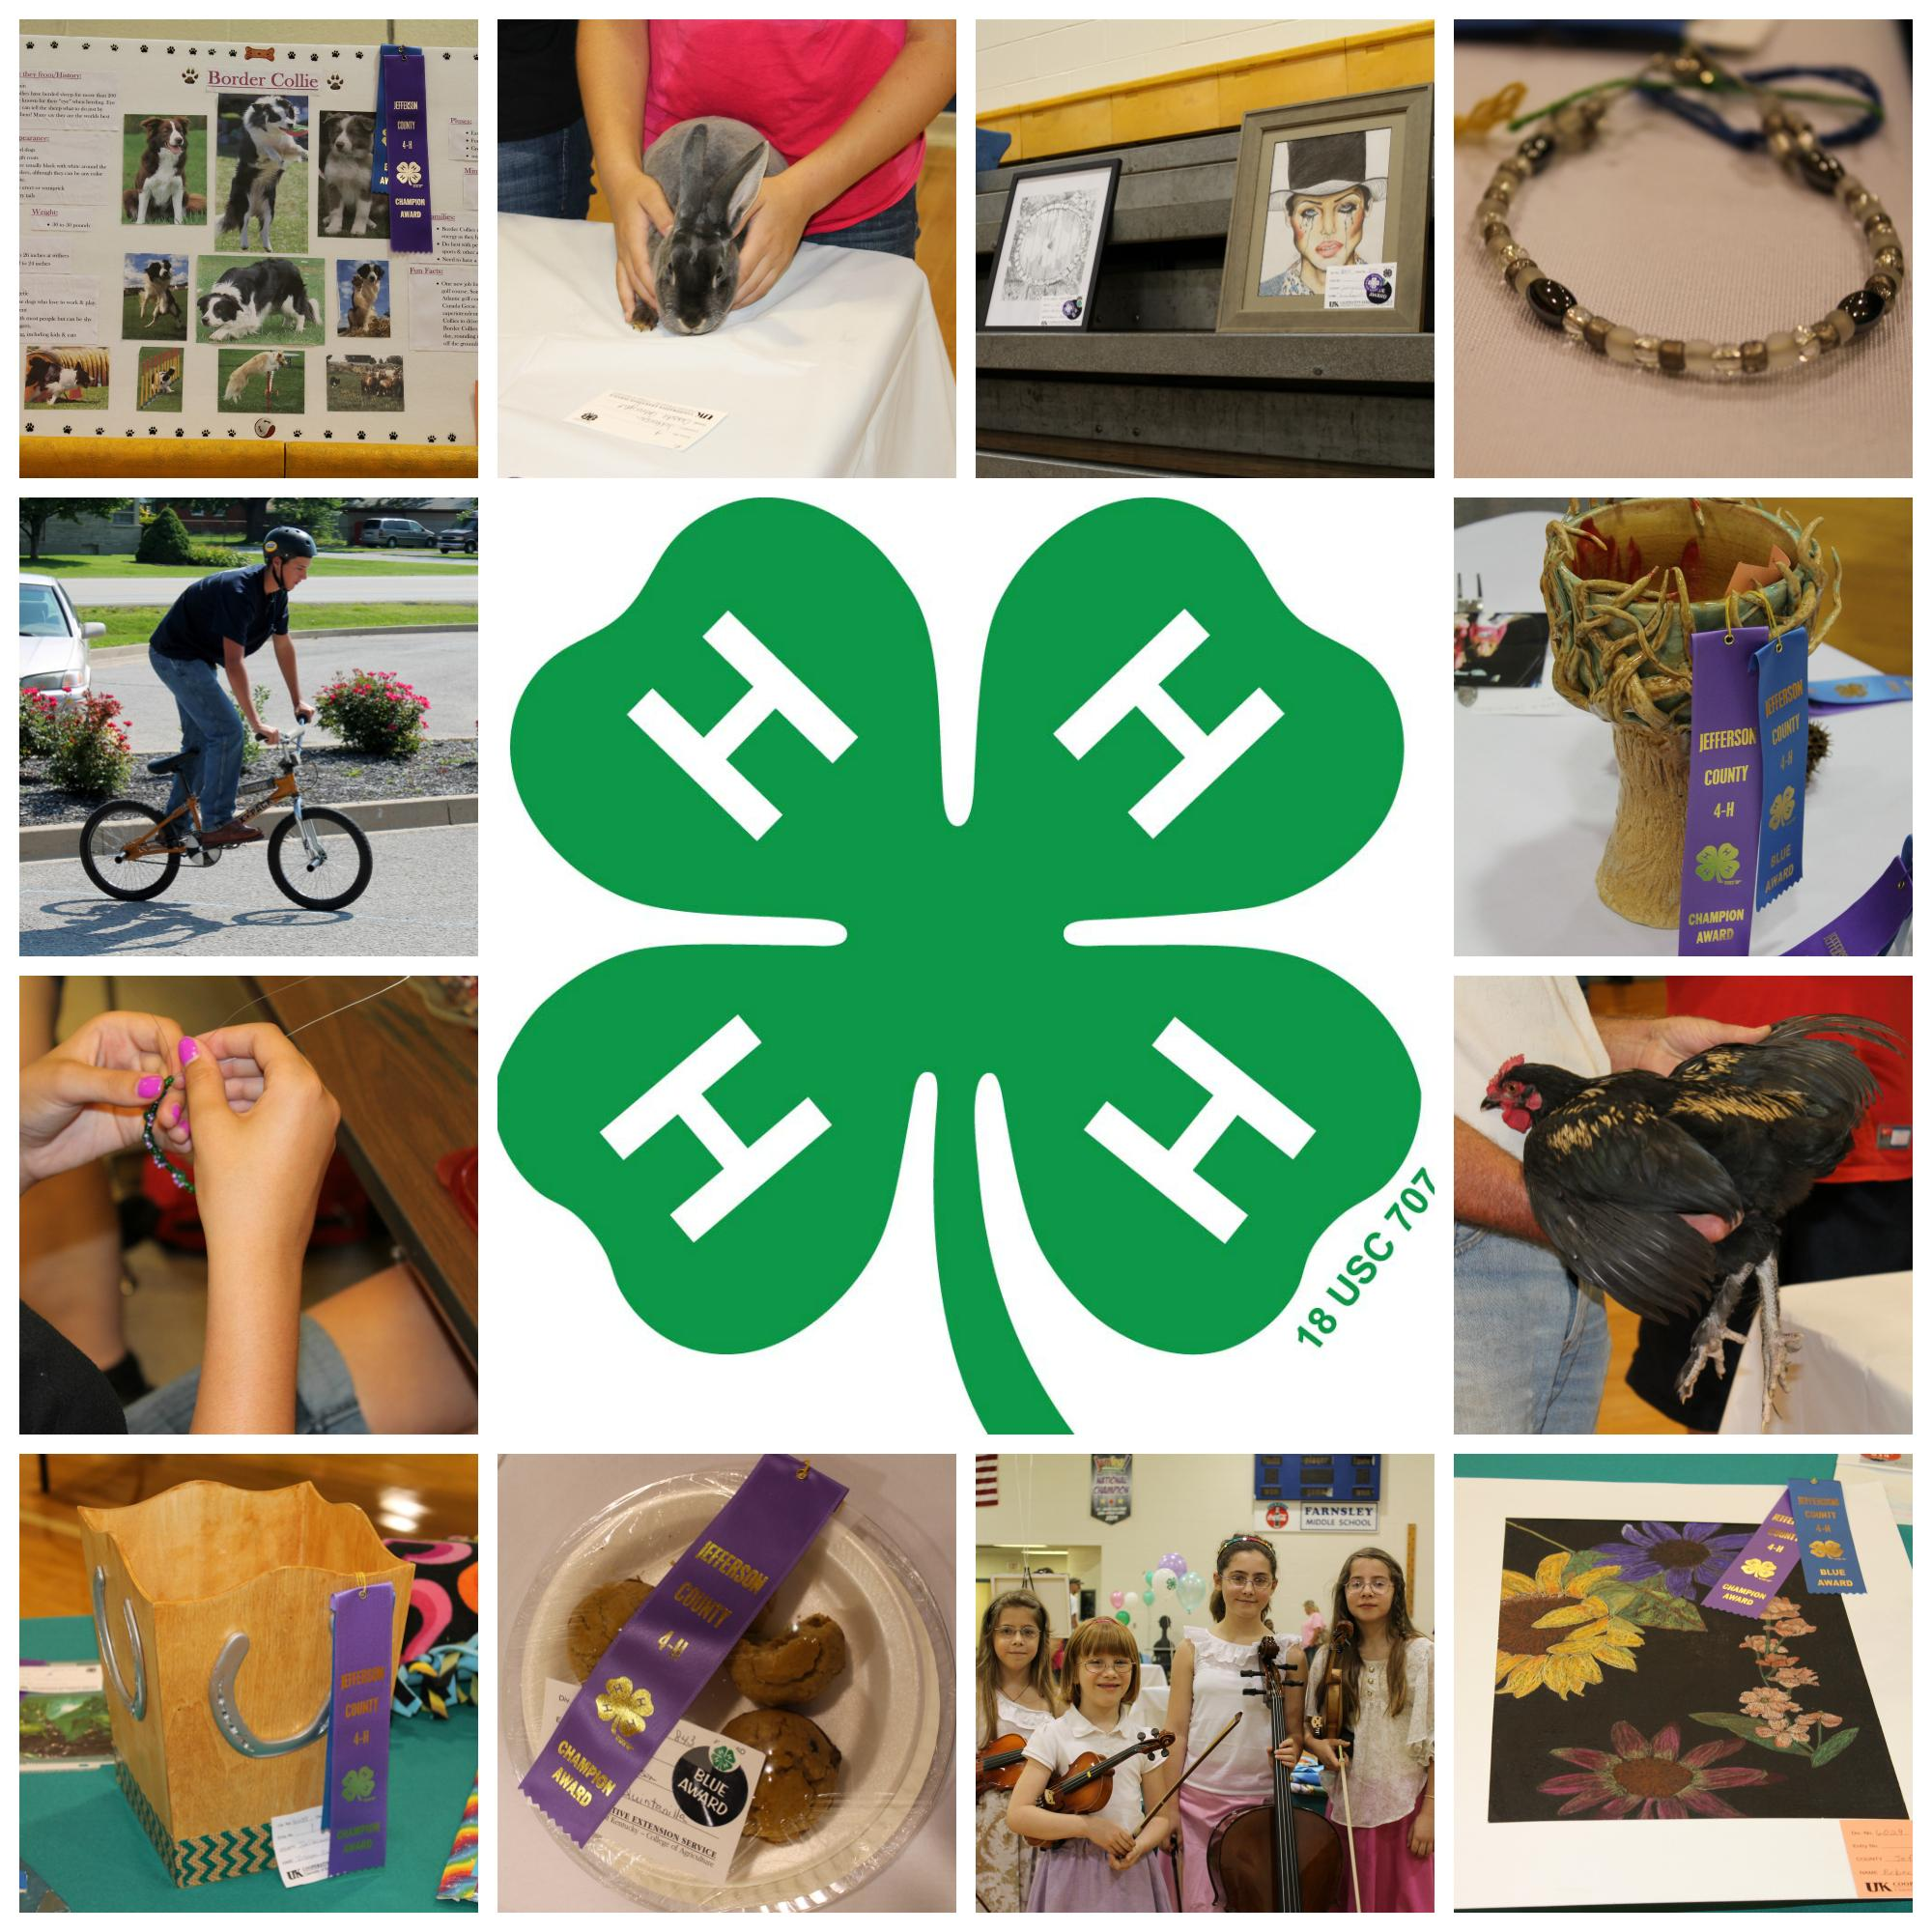 4-H photos from fair